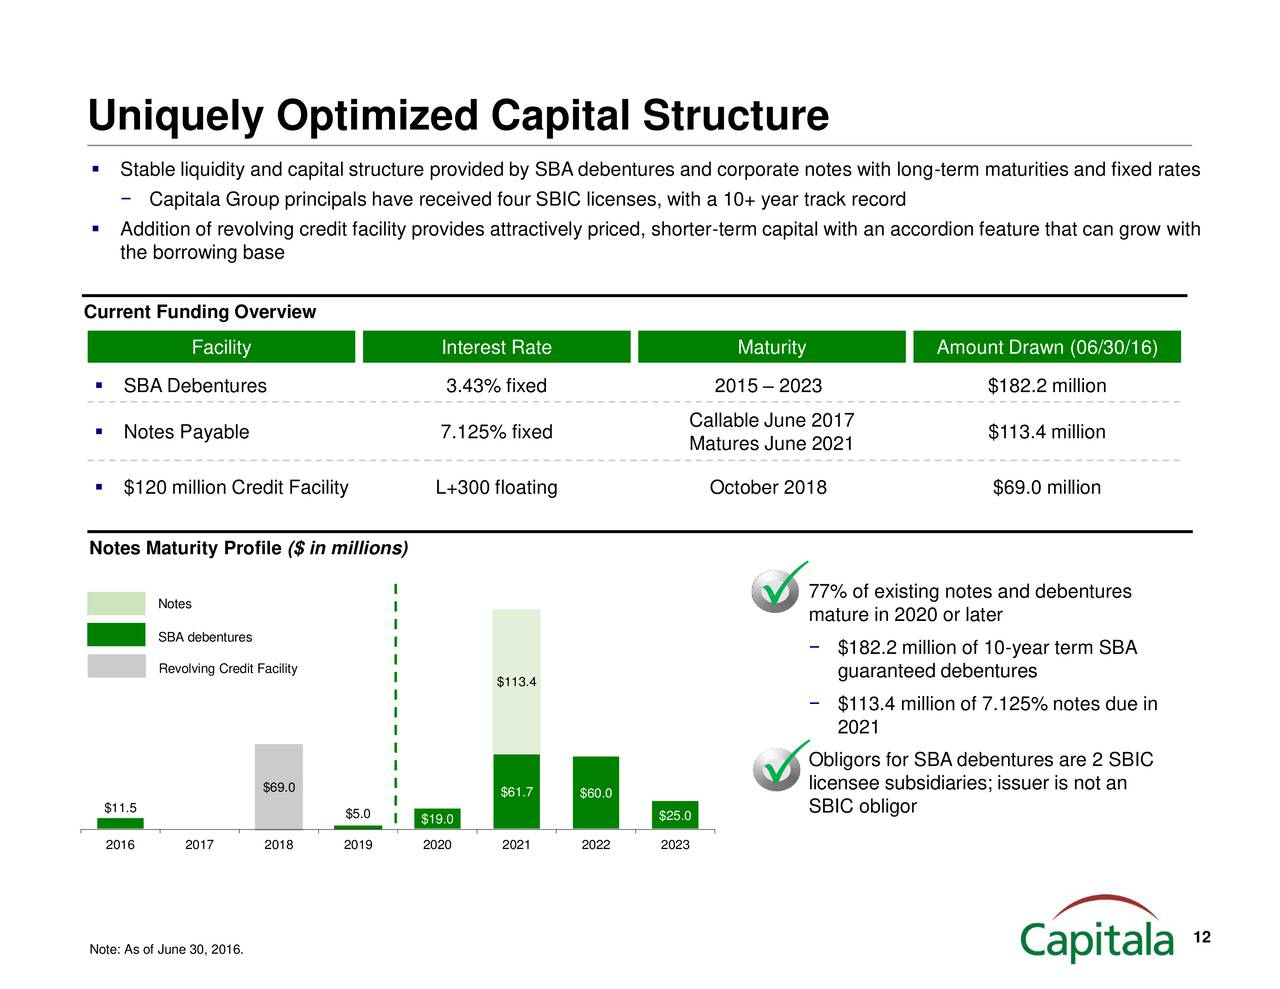 analysis of short term liquidity and long term Analysis of the liquidity and solvency of the organization should be carried out before making any long-term investments promise large dividends, but paying for them comes from distracted funds for a in the numerator there may be a figure of short-term, long-term, total or net (excluding dz) debt.